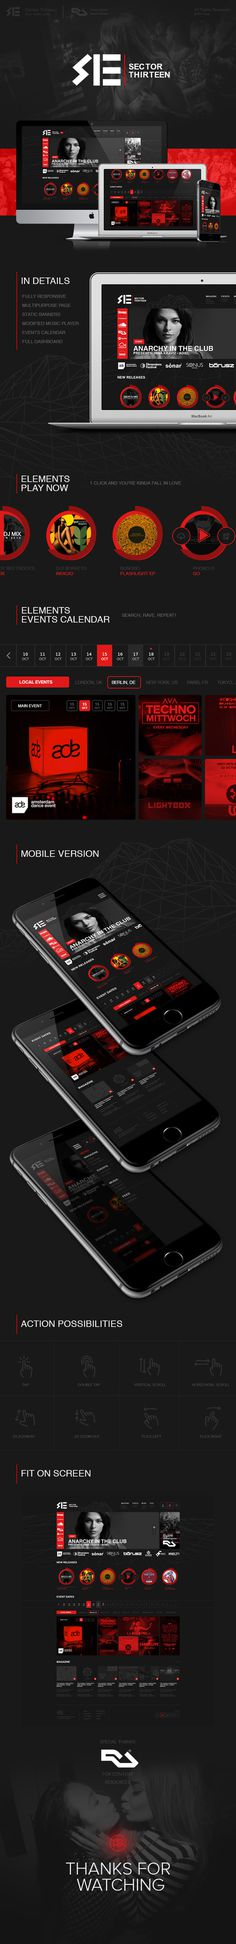 SECTOR 13 on Behance #ux #design #interface #ui #music #web